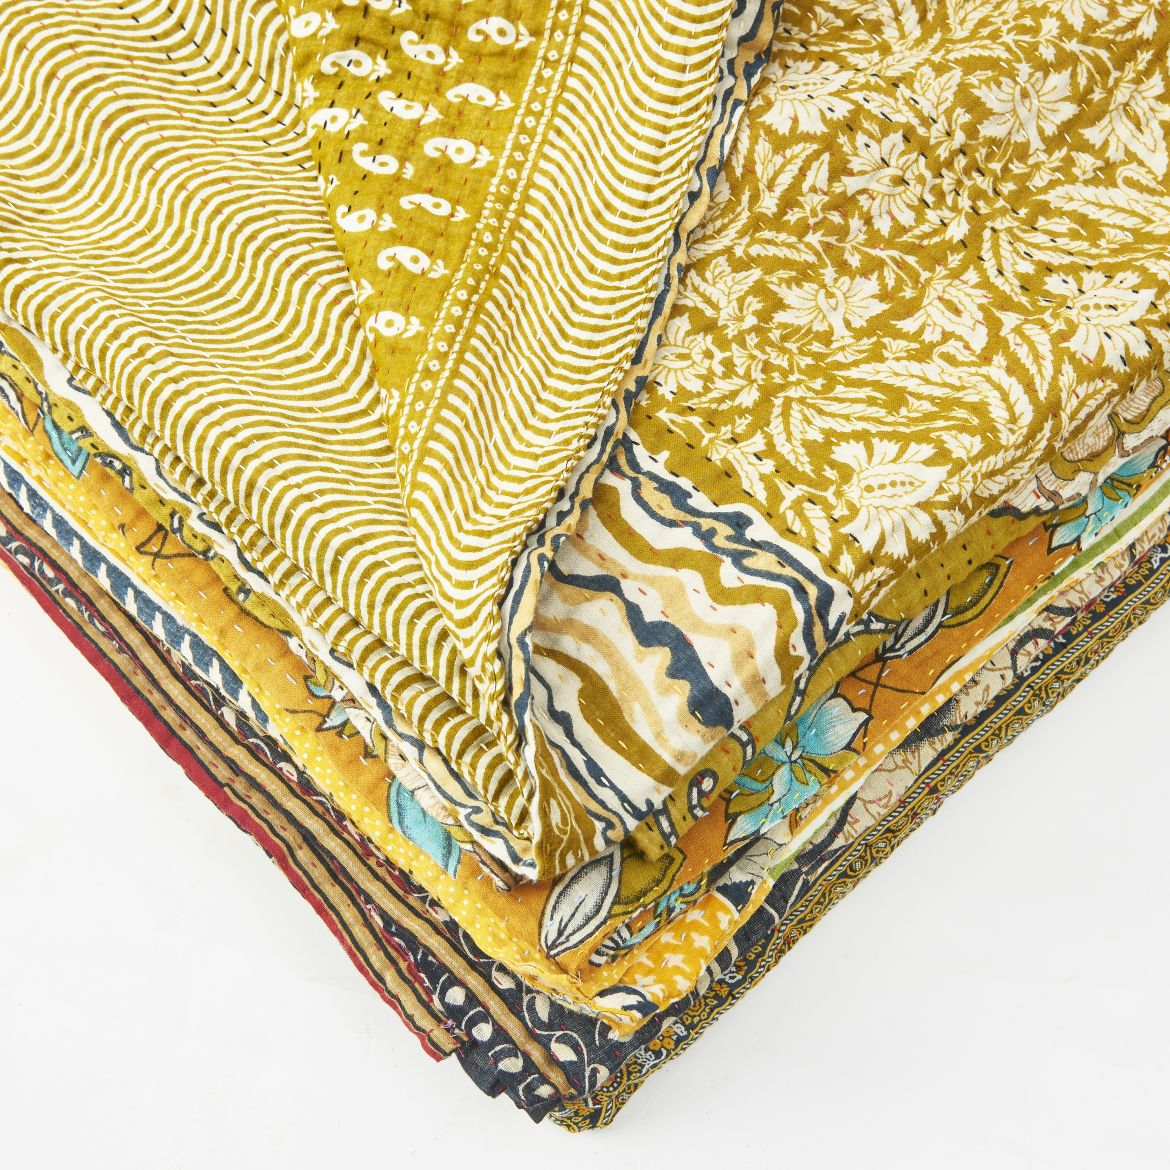 Hand quilted Sari Kantha Quilts